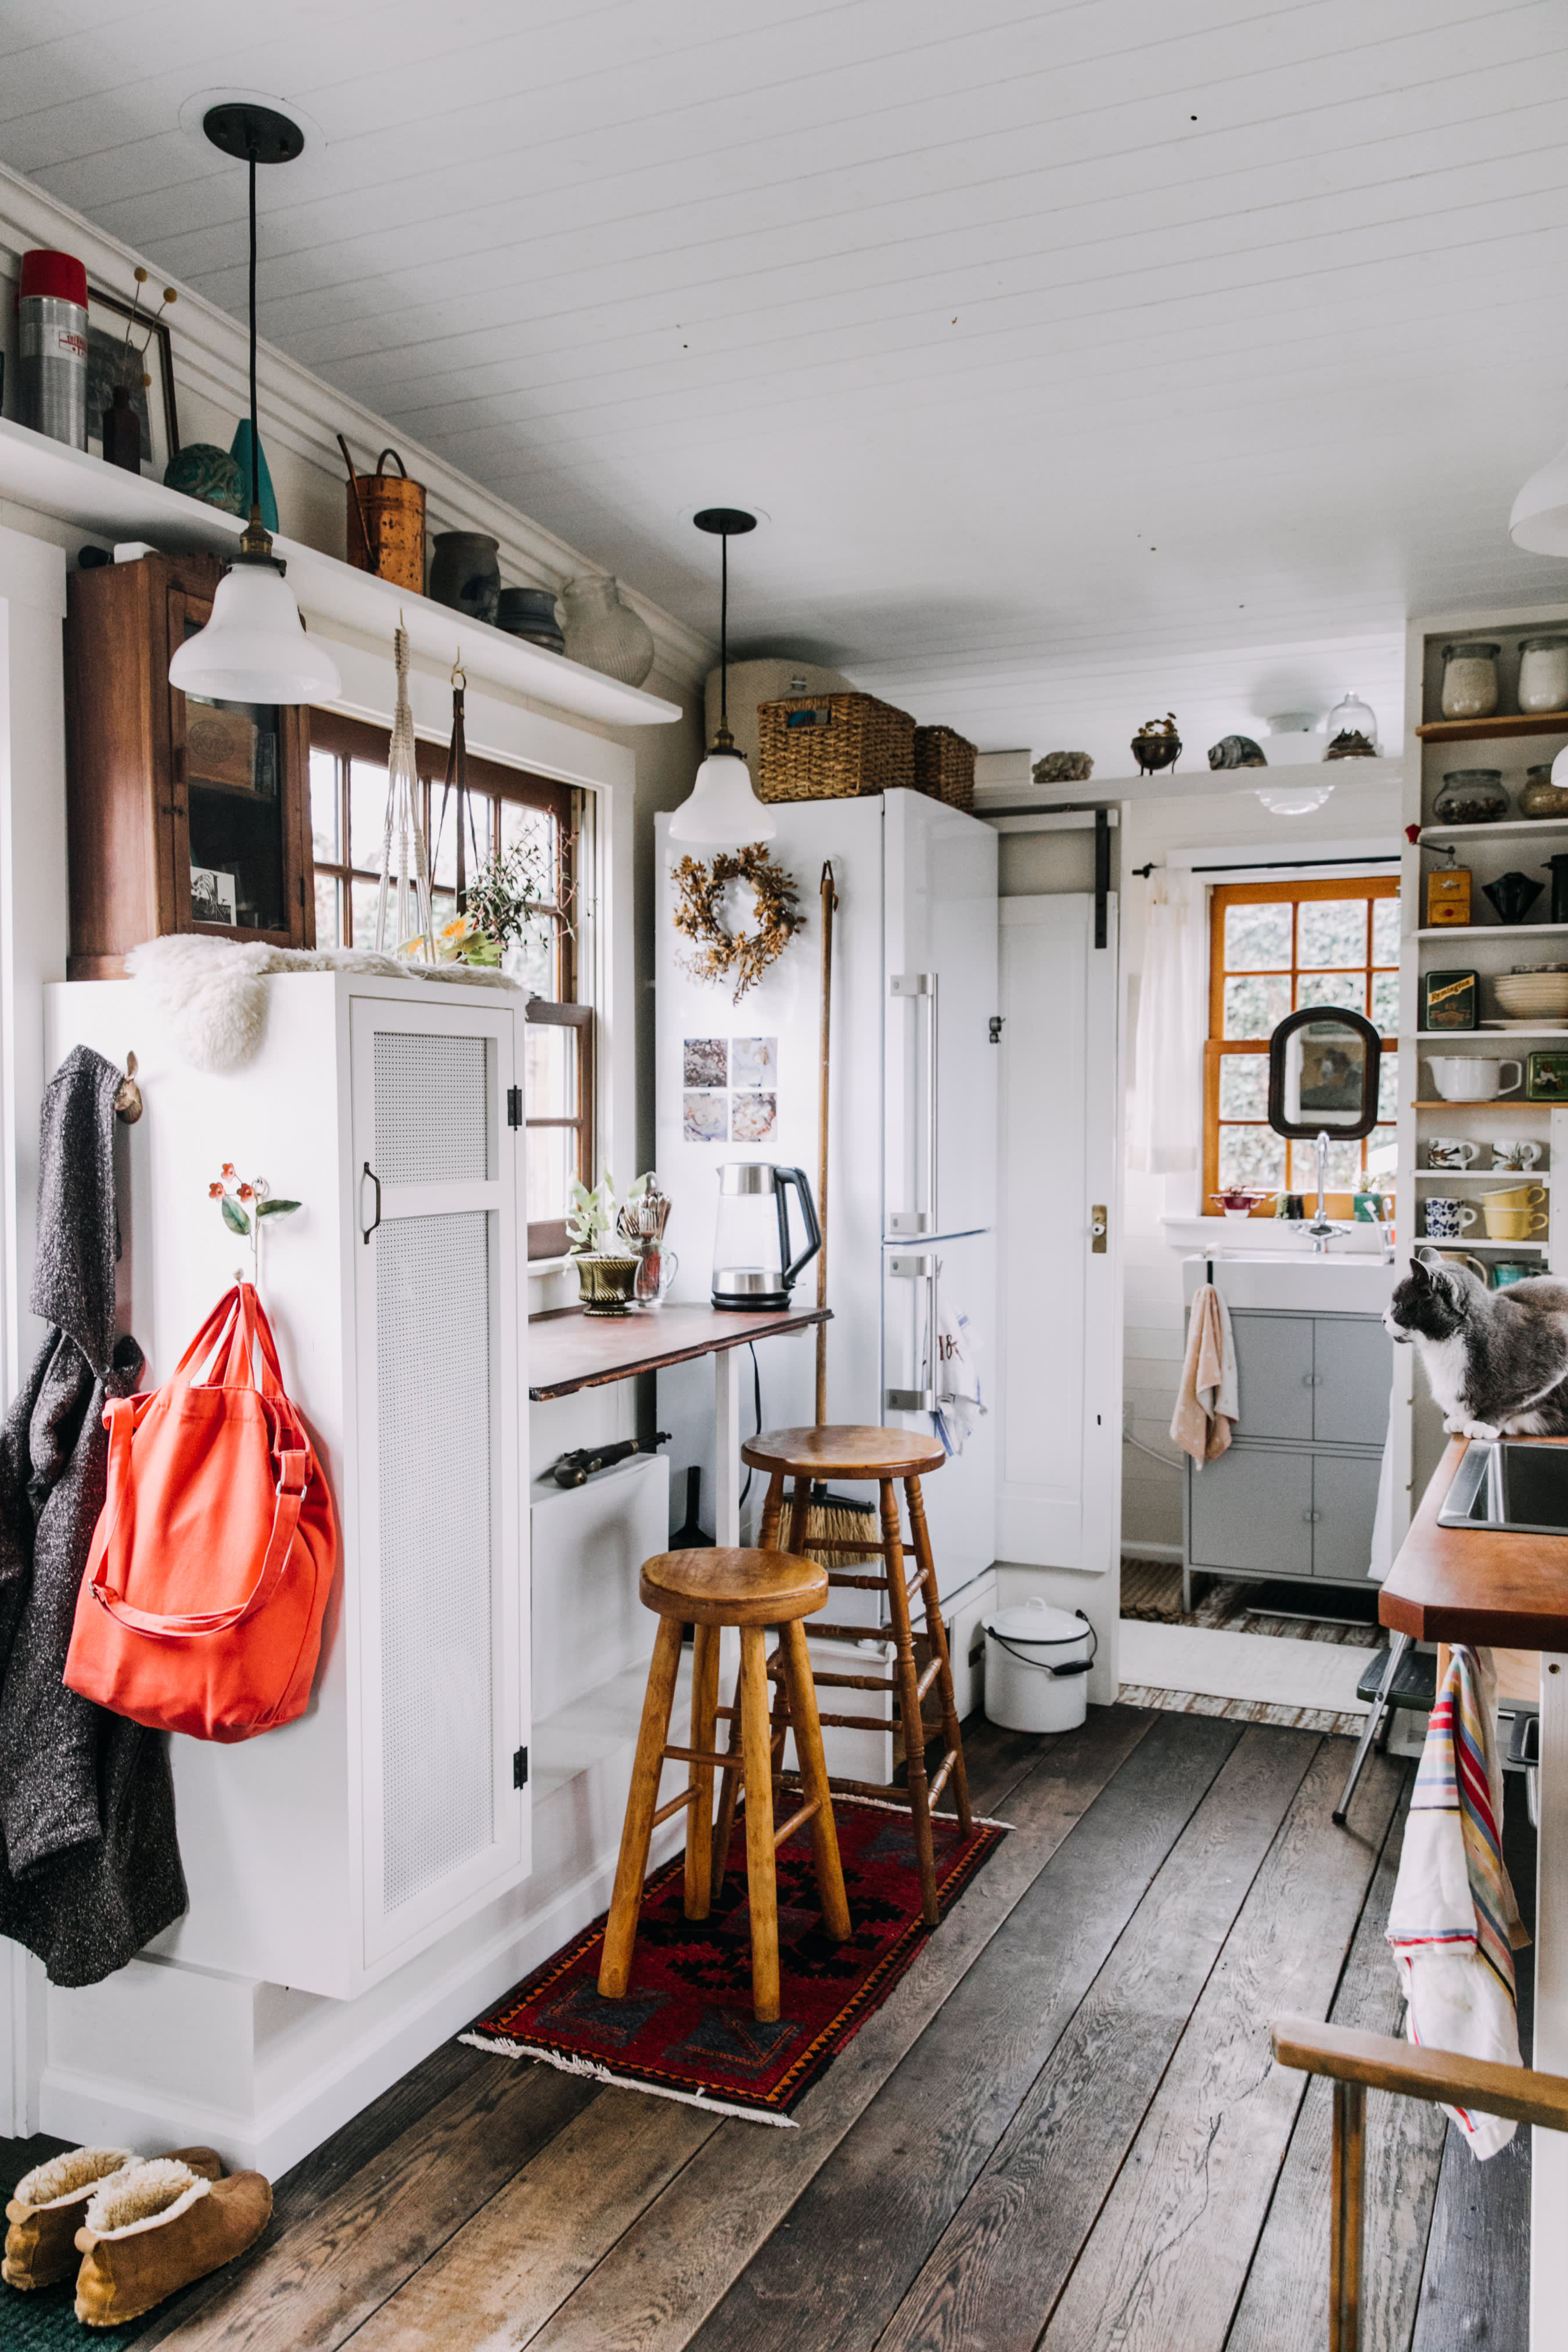 This Is One Of The Most Beautiful Livable Tiny Houses We Ve Ever